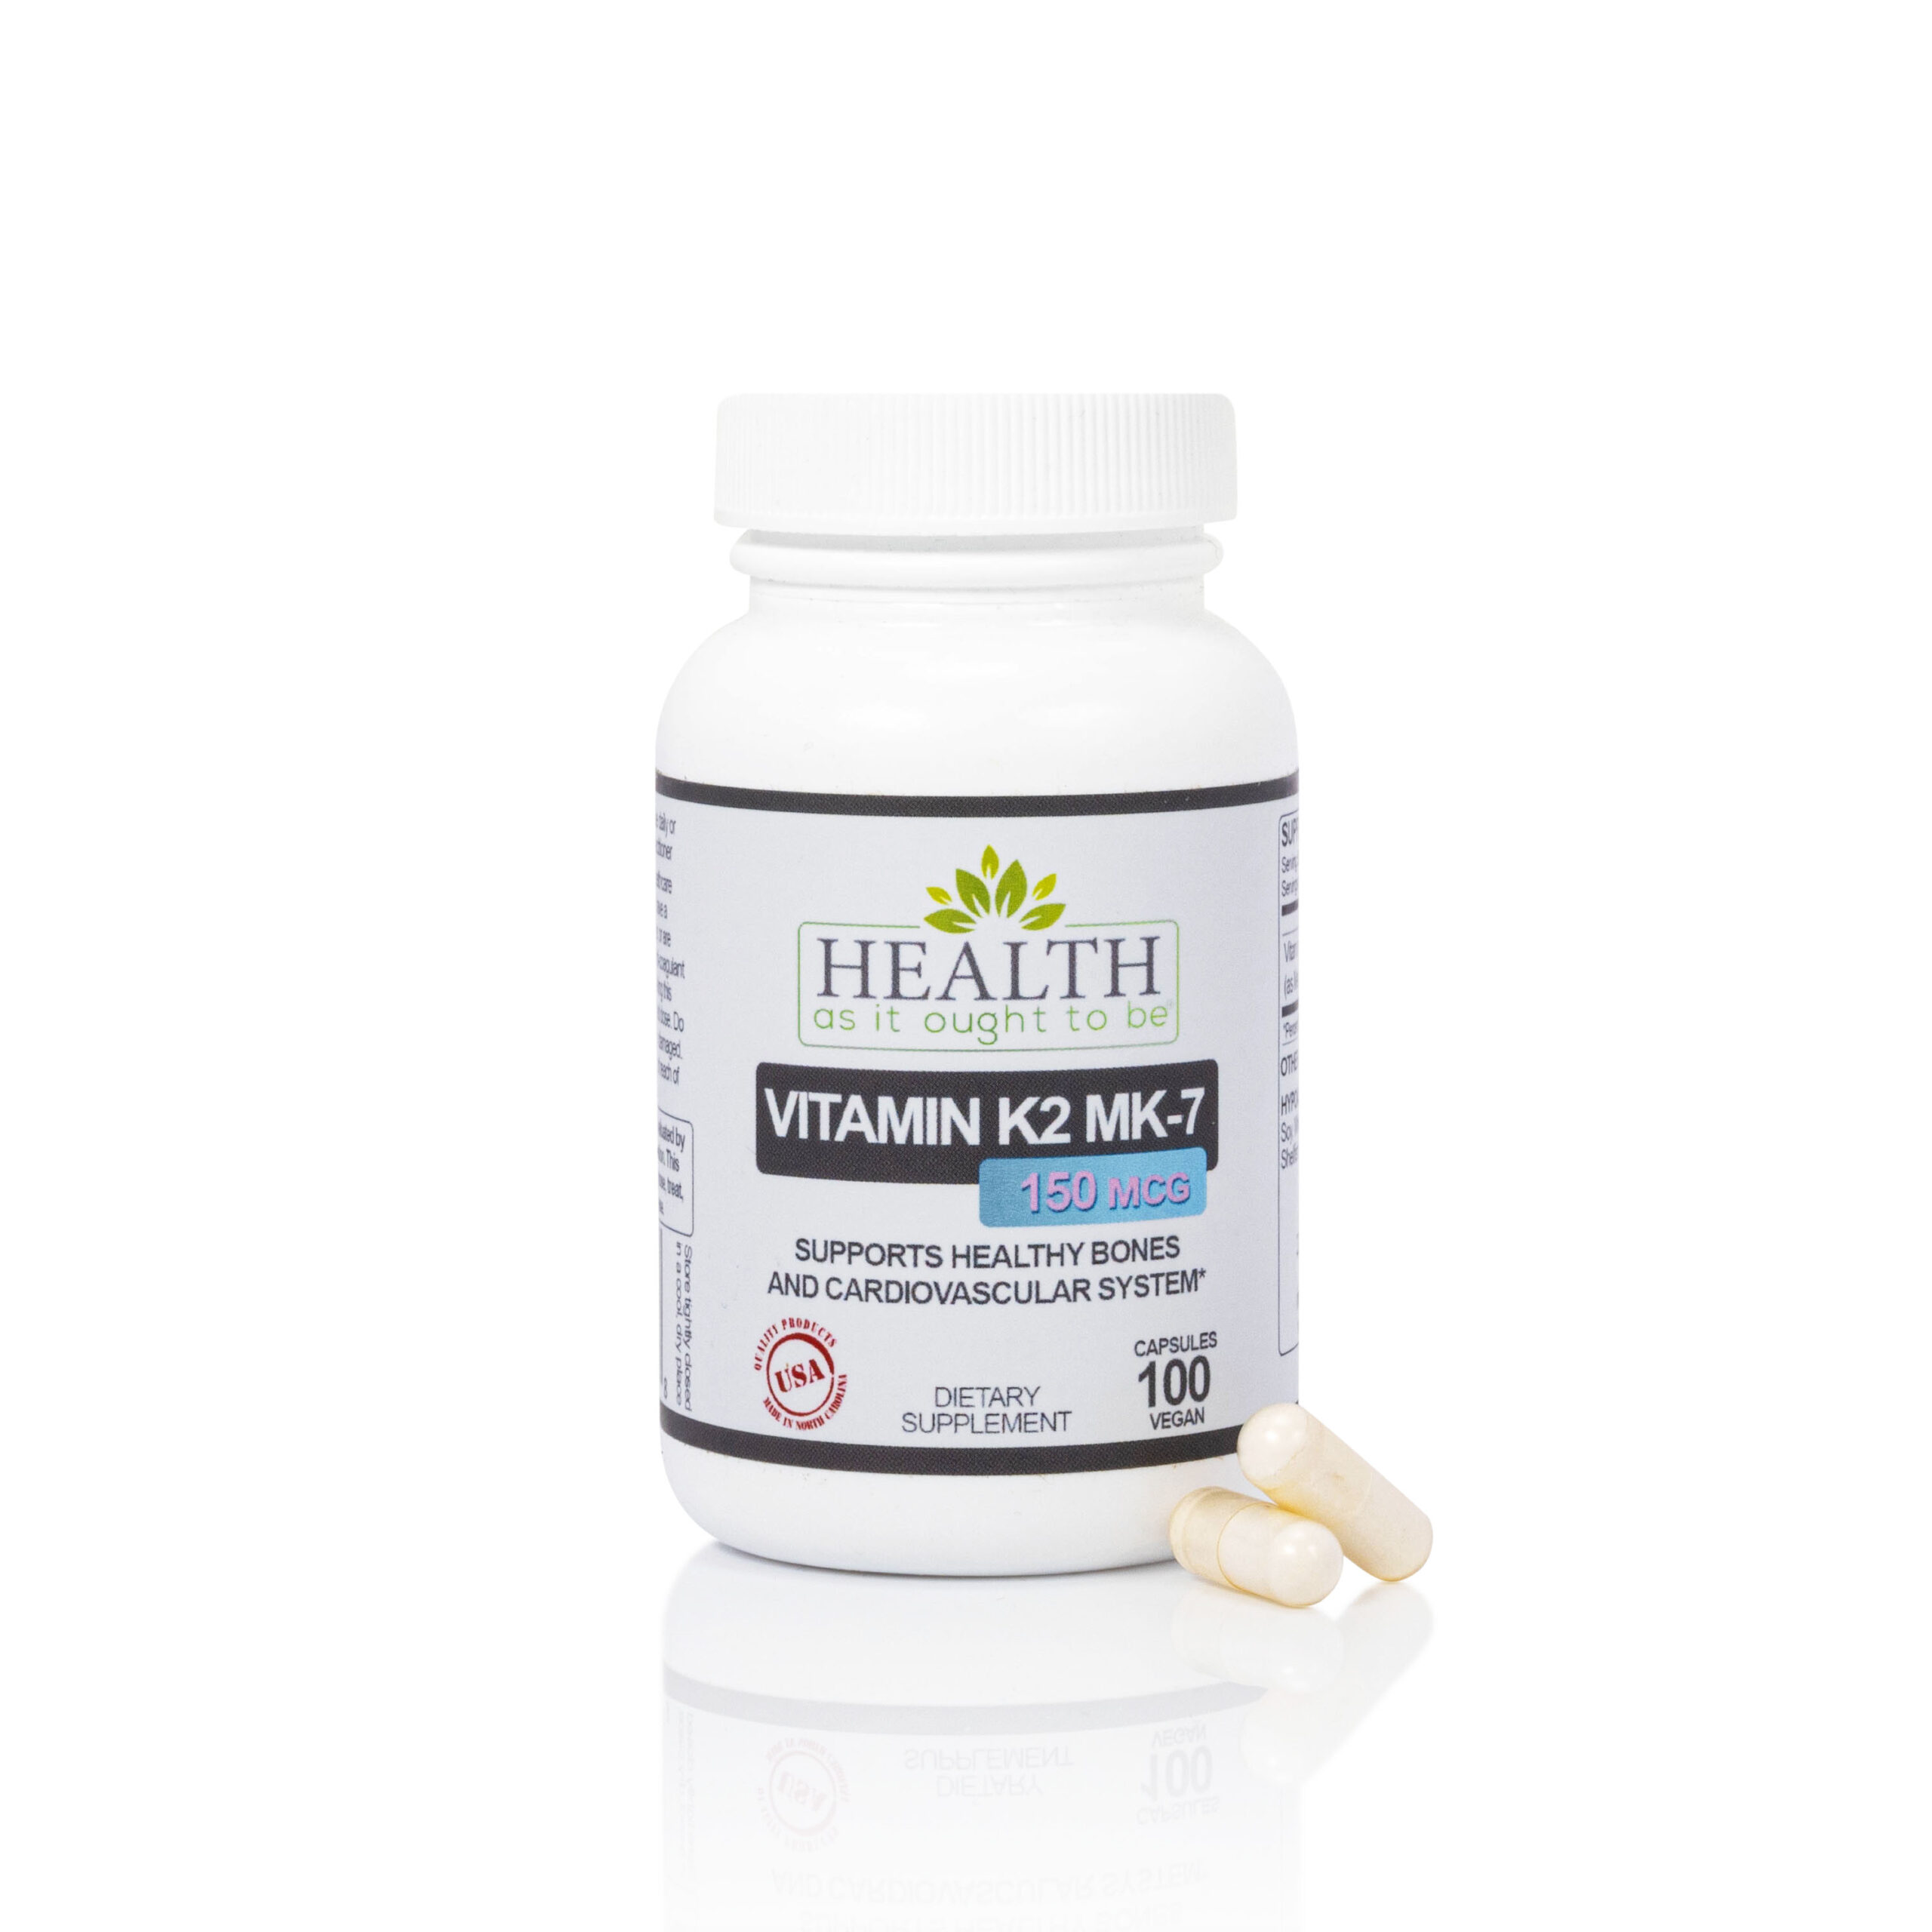 Did You Know Vitamin K-2 Helps Improve Blood Sugar Levels?